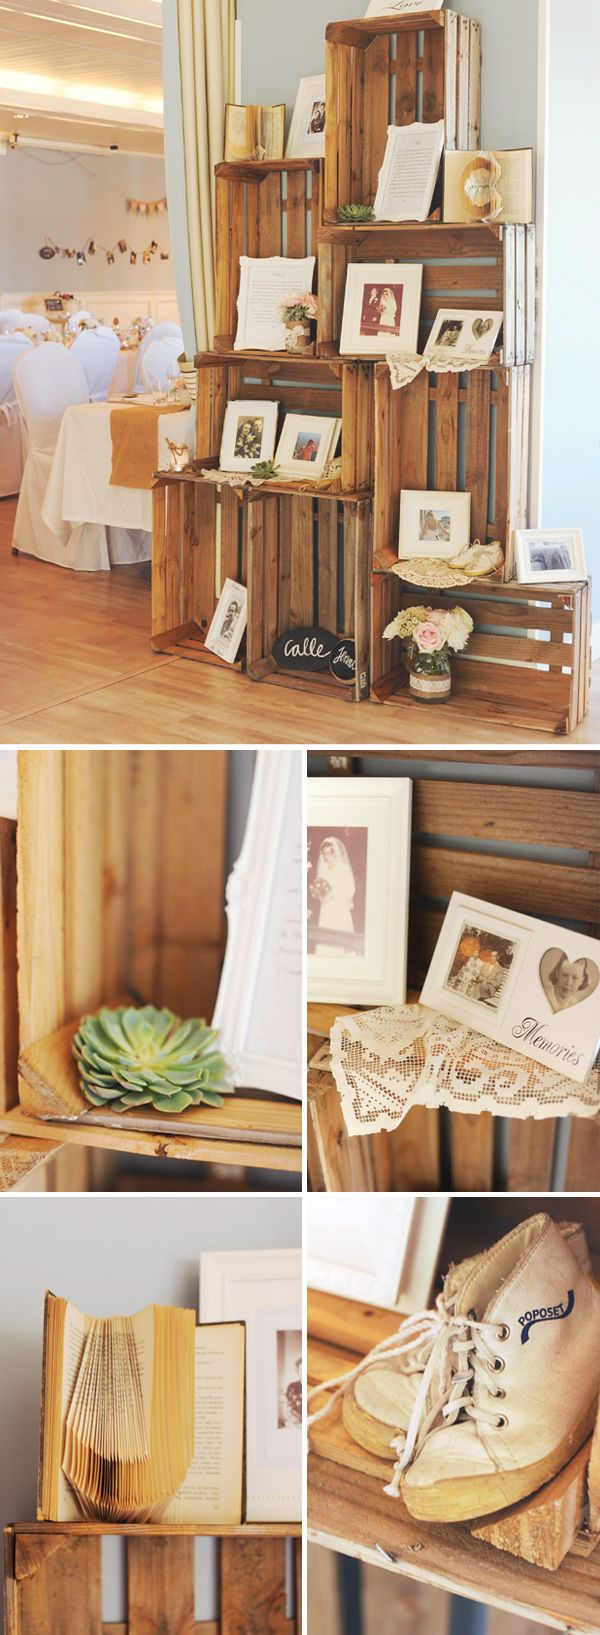 the perfect romantic & rustic wedding! we literally have everything to recreate this look....just need the bride lol @Kyle Michelle Weddings